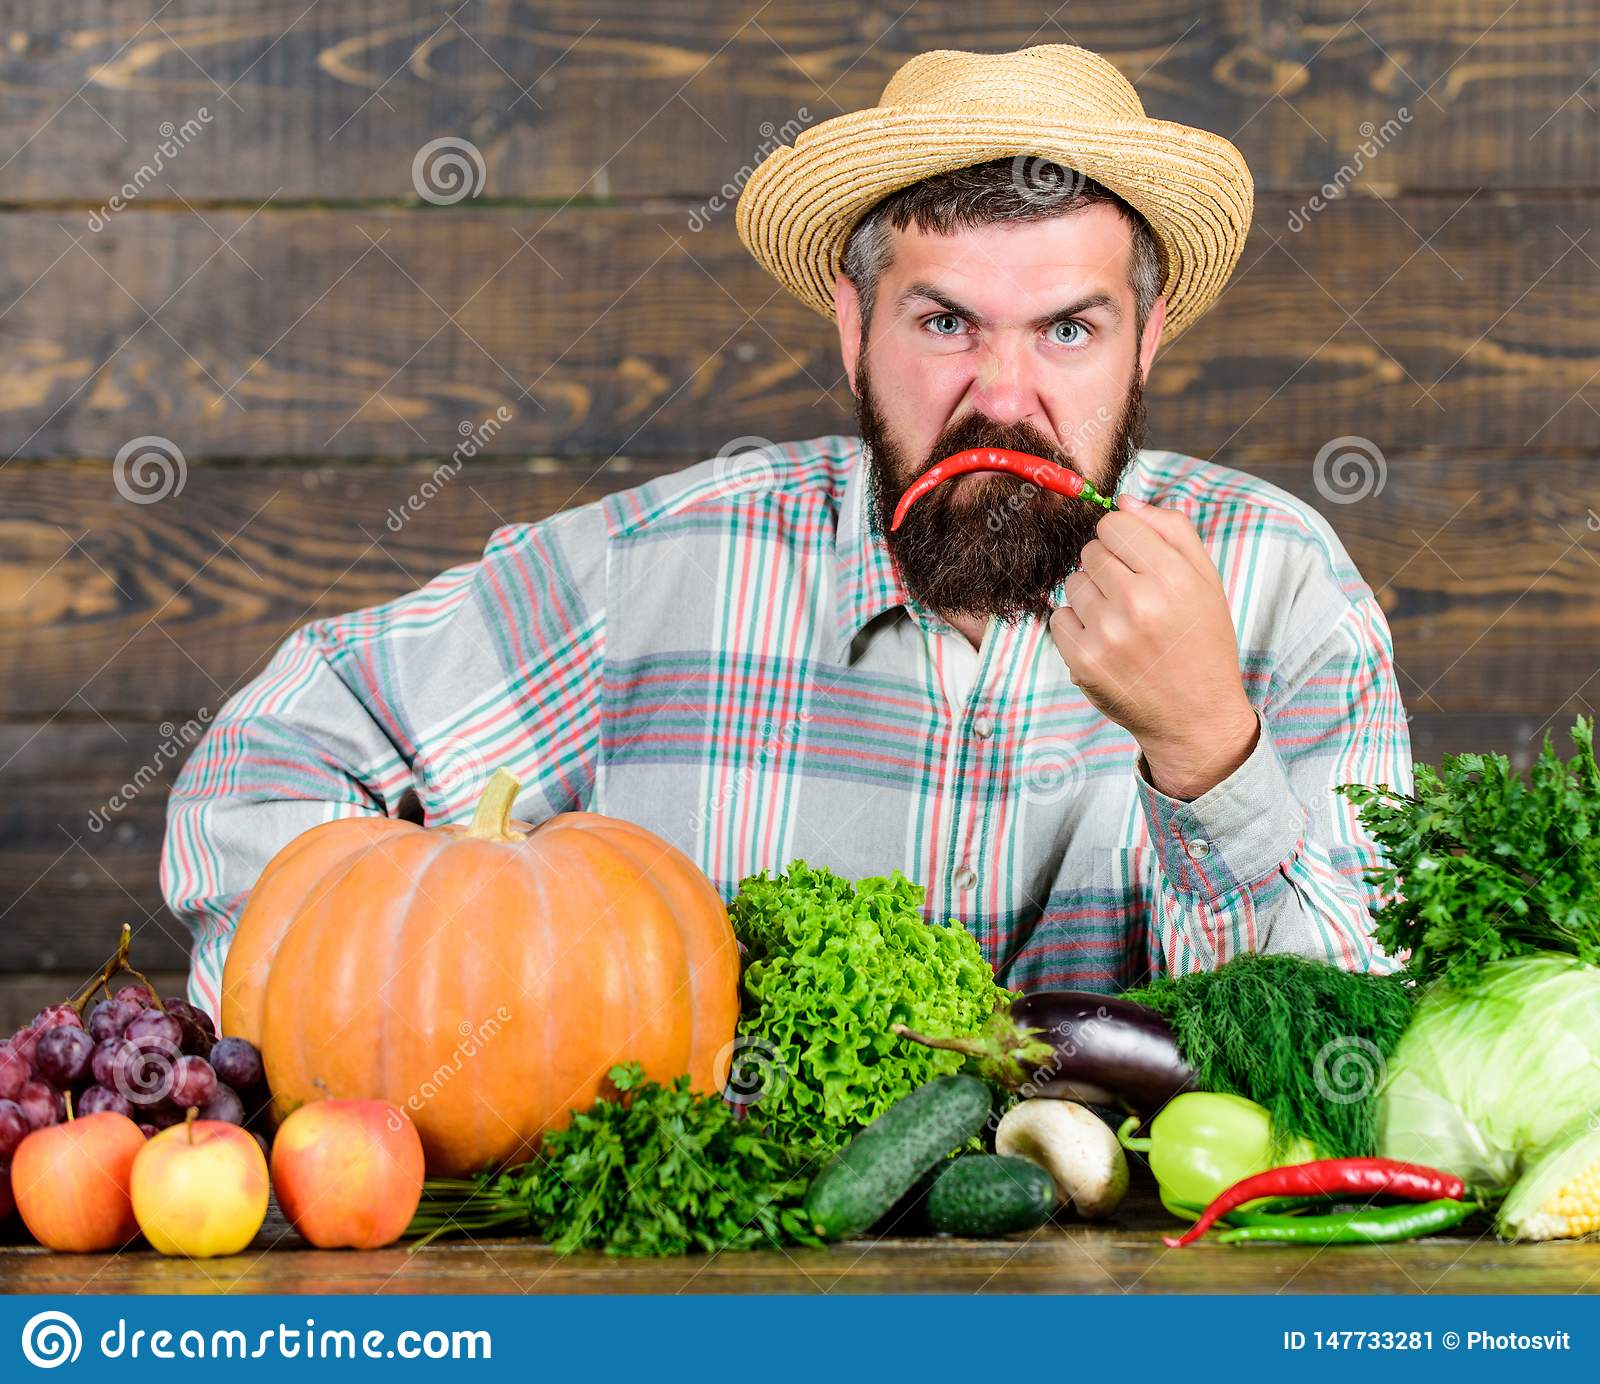 Excellent quality vegetables. Man with beard proud of his harvest vegetables wooden background. Farmer with organic